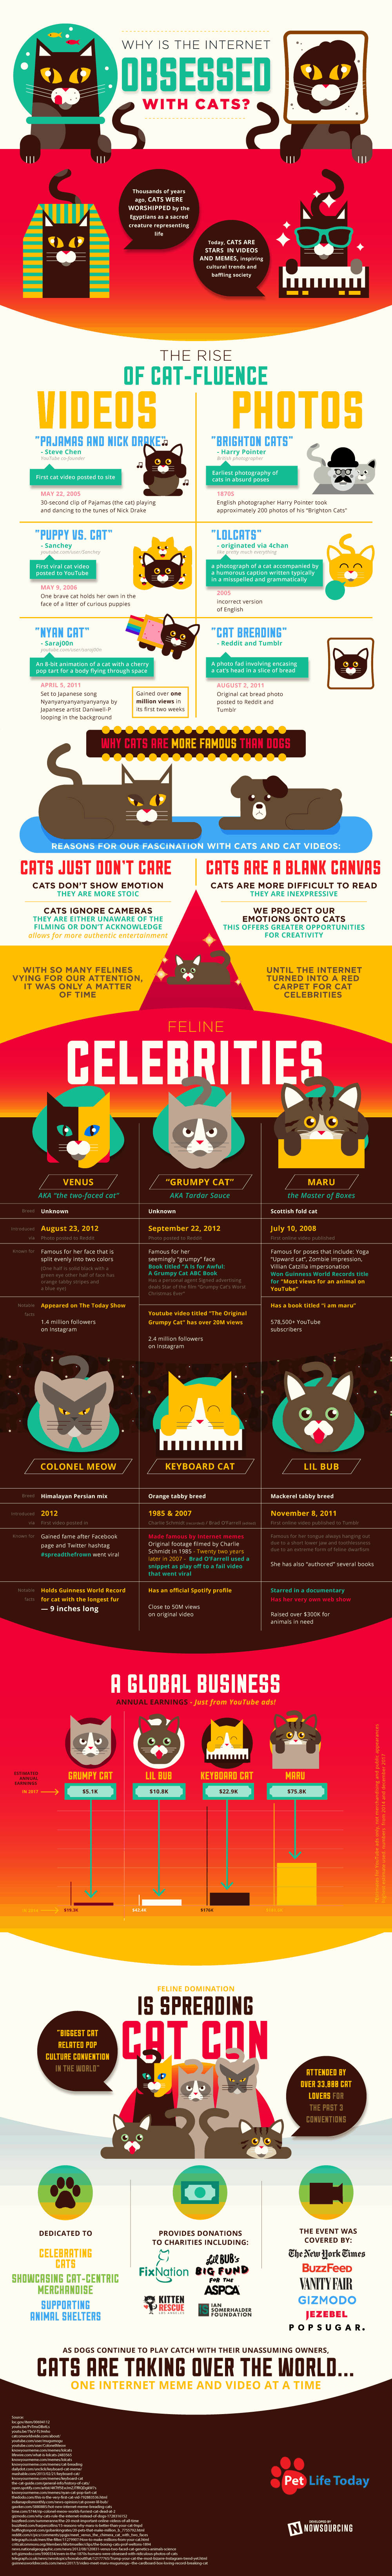 Why is the Internet Obsessed With Cats?